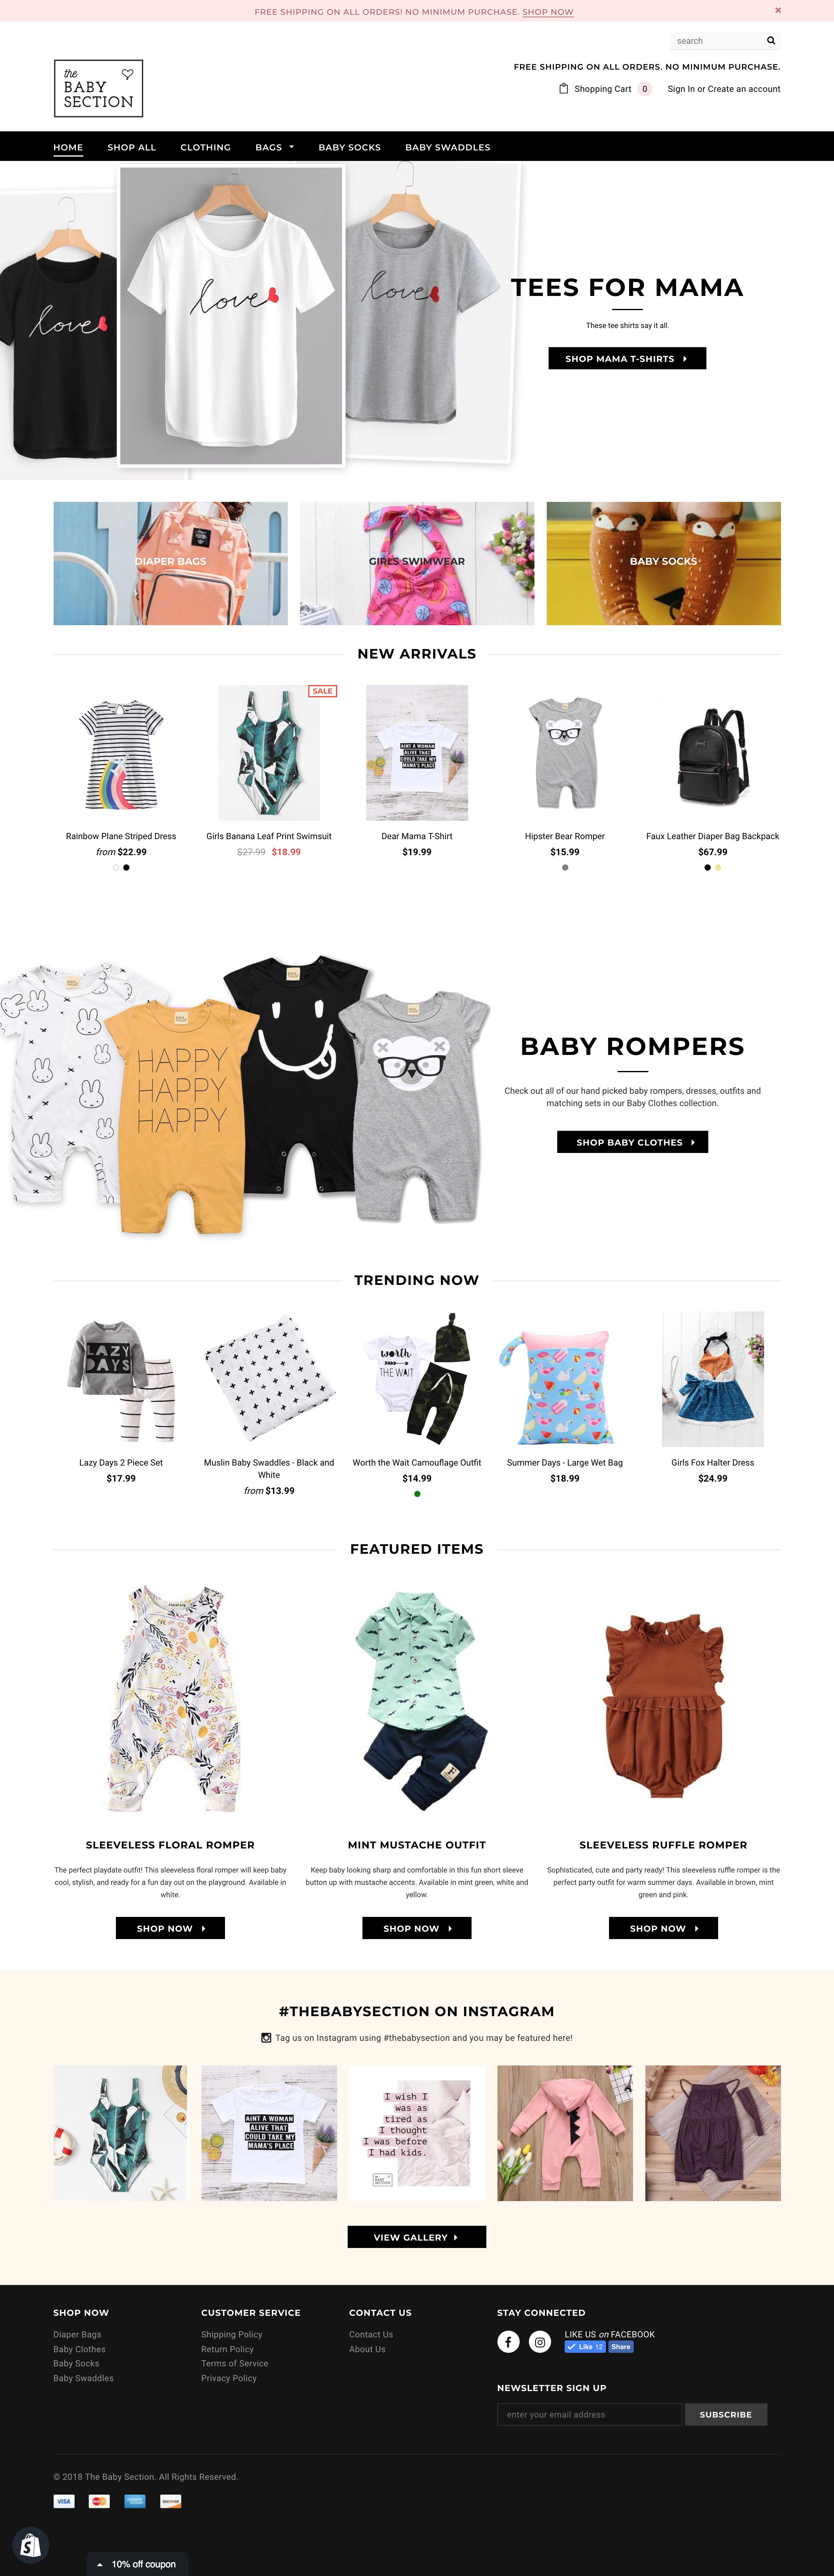 The Baby Section Screenshot - 4